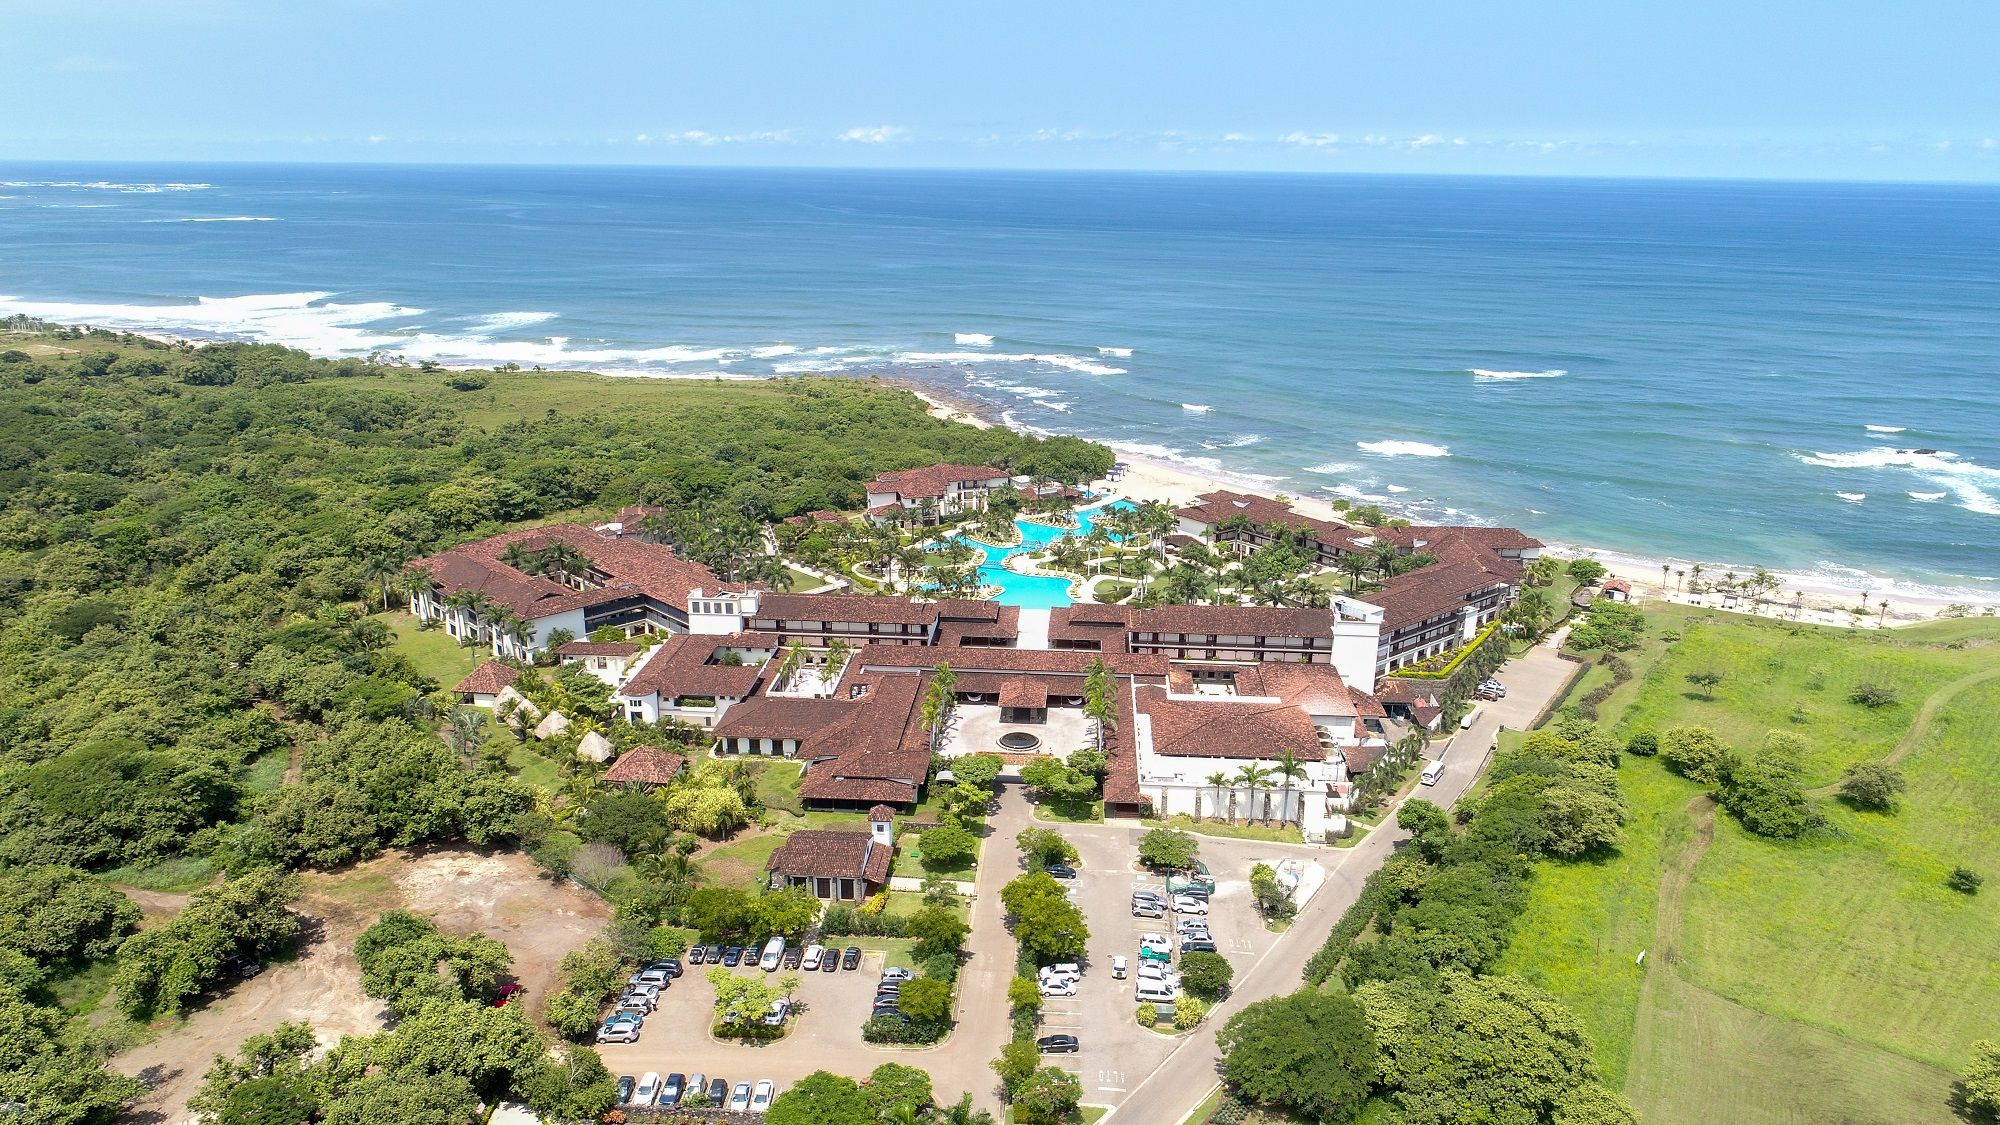 stay at jw marriott guanacaste resort & spa for a luxury beach vacay